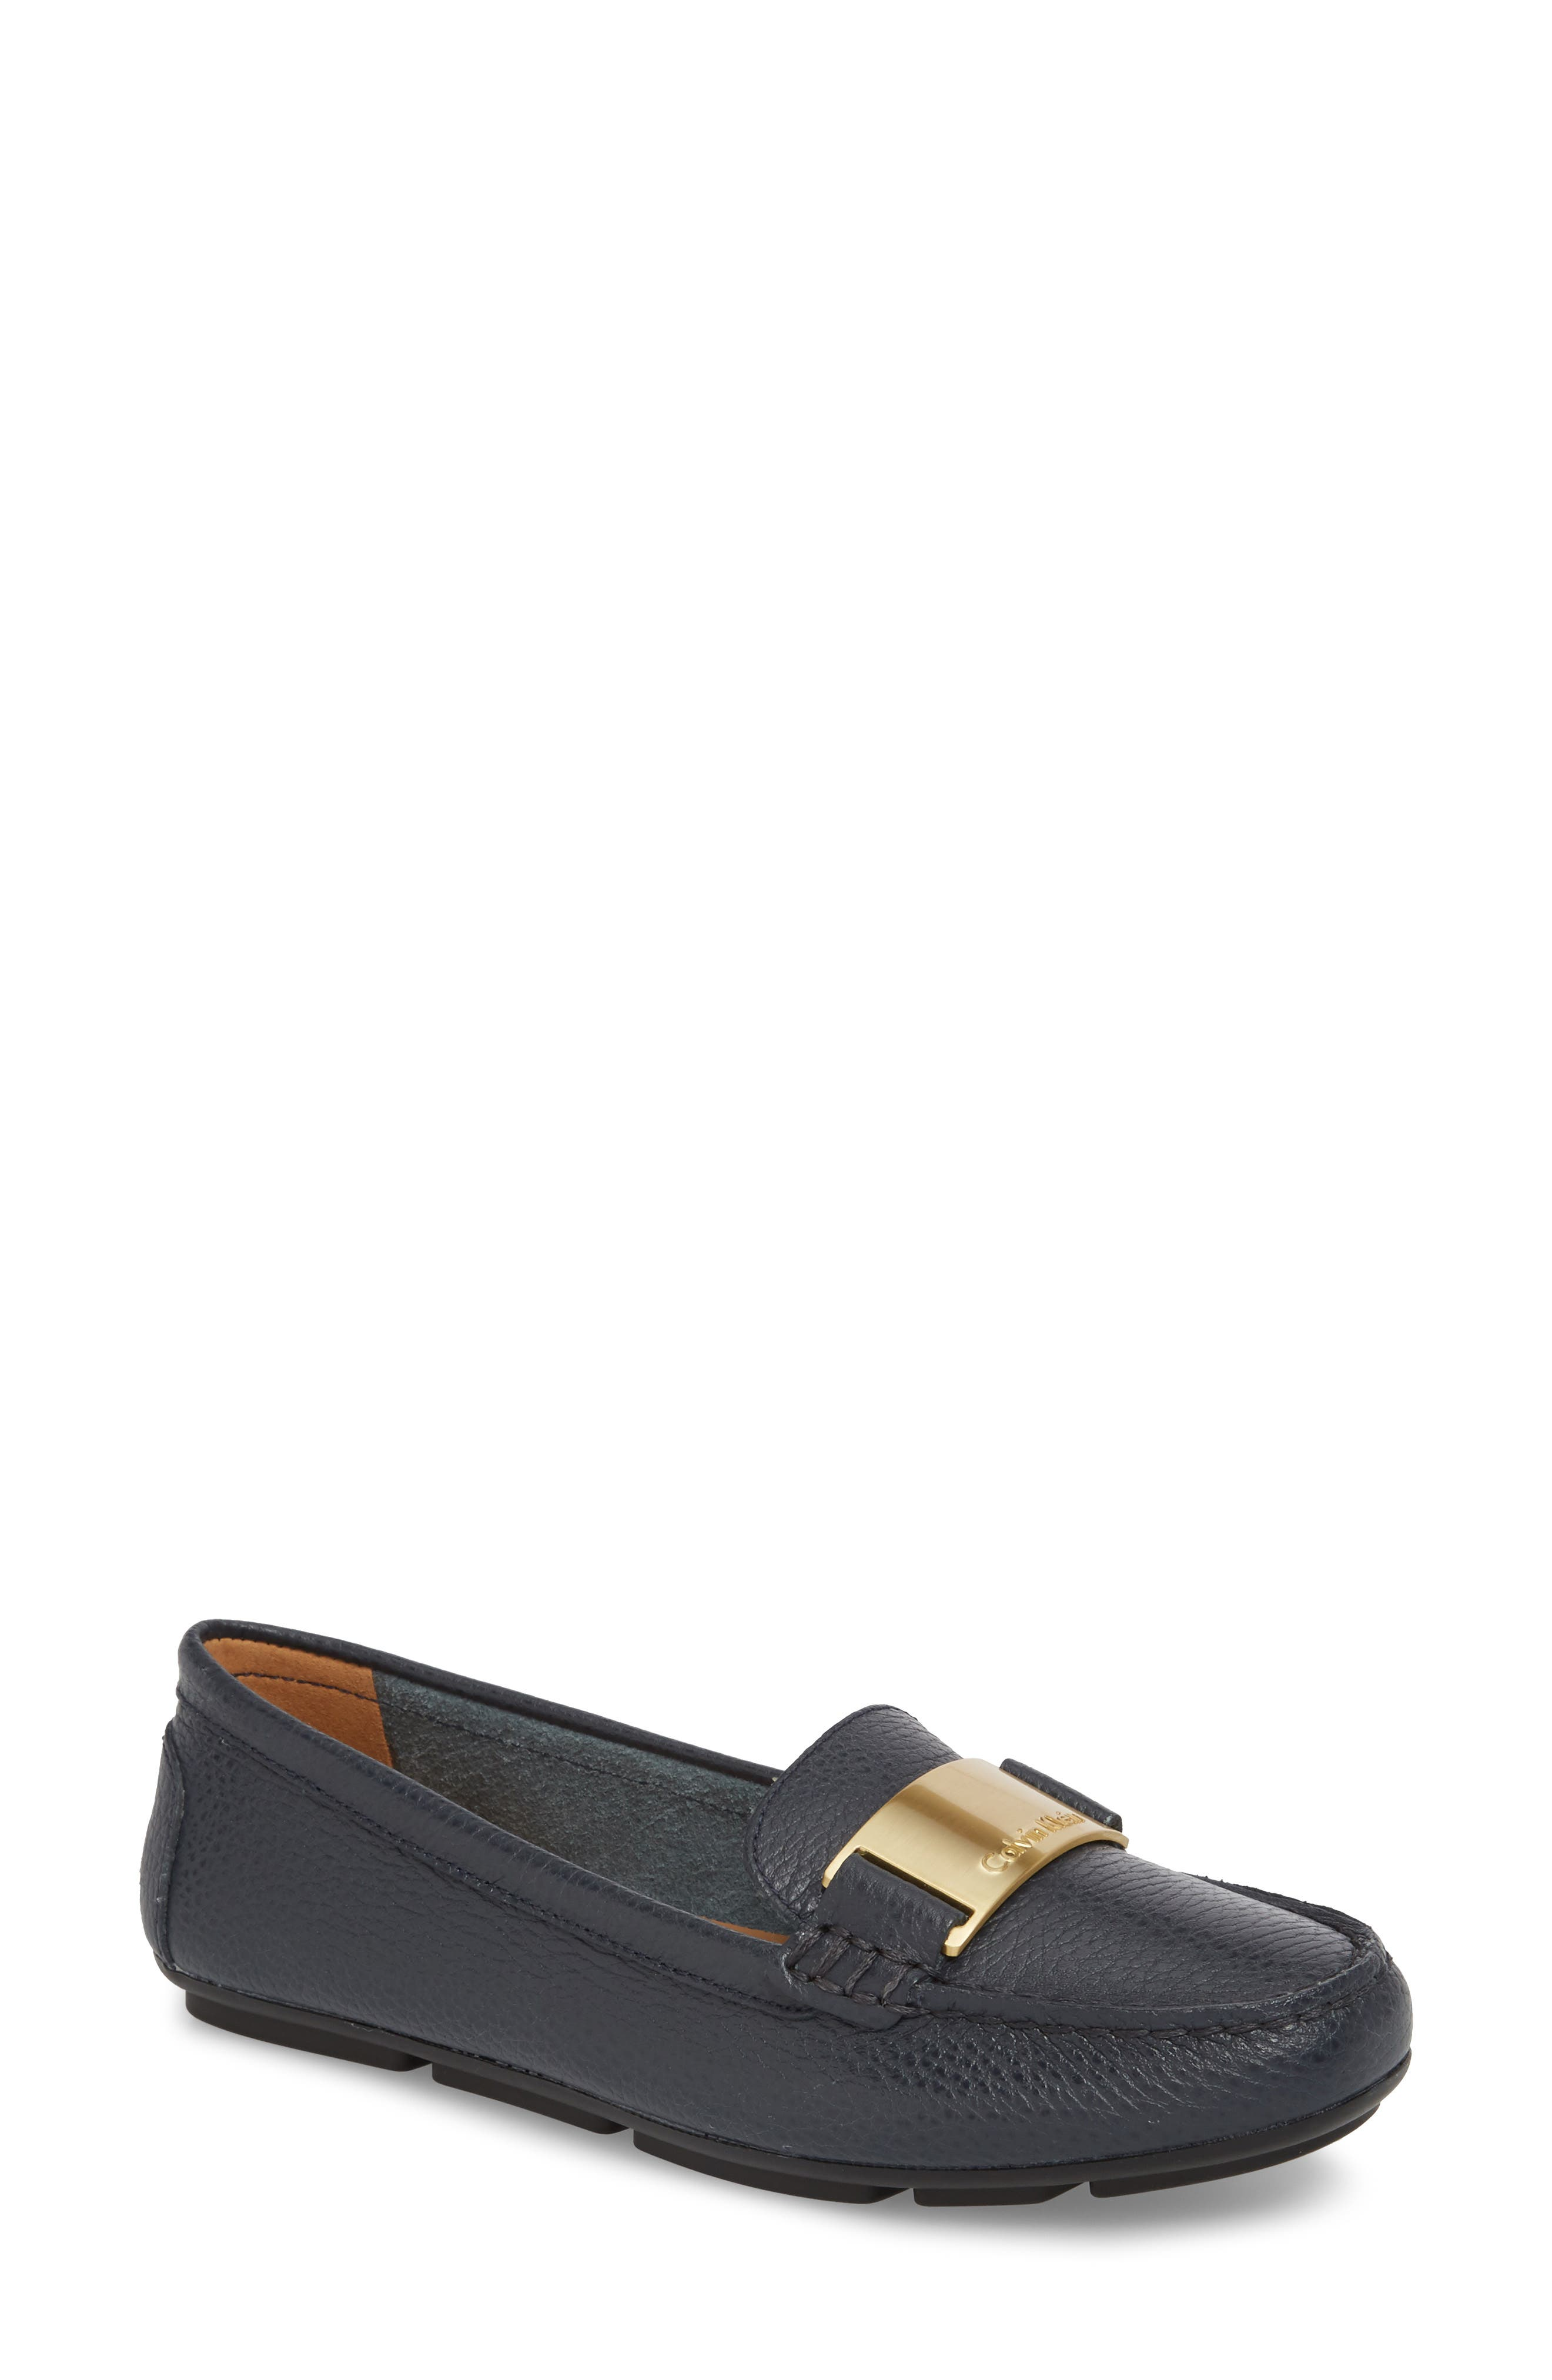 Lisette Loafer,                             Main thumbnail 1, color,                             Deep Navy Leather